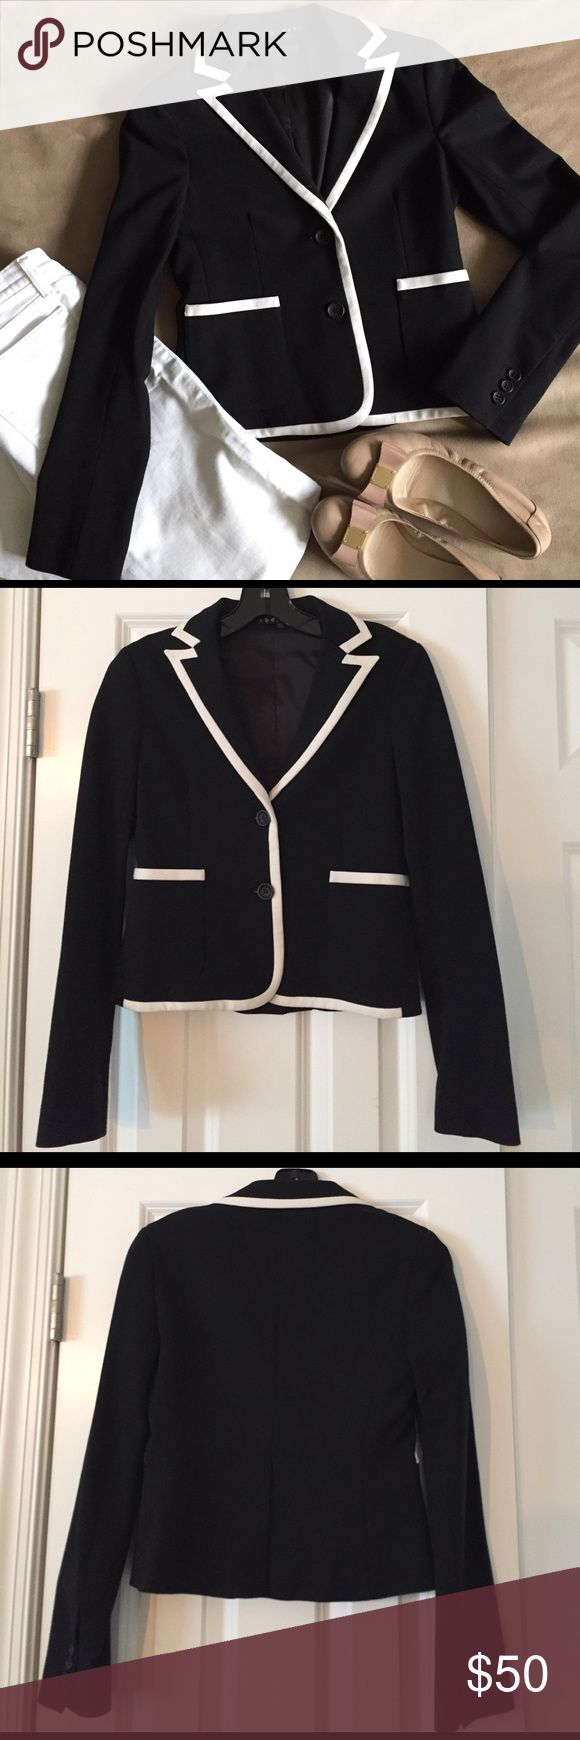 Theory Black Blazer with White Piping size 0 Theory Black Blazer with White Piping.  Size 0.  Blazer is super comfortable, feels like a jersey knit in.  Has 3 button Detail on sleeves.  White Piping on collar, bottom, pockets, and front of jacket.  Two button closure on front.  Darts on front of Jacket to provide a slimming look.  Worn twice. Theory Jackets & Coats Blazers